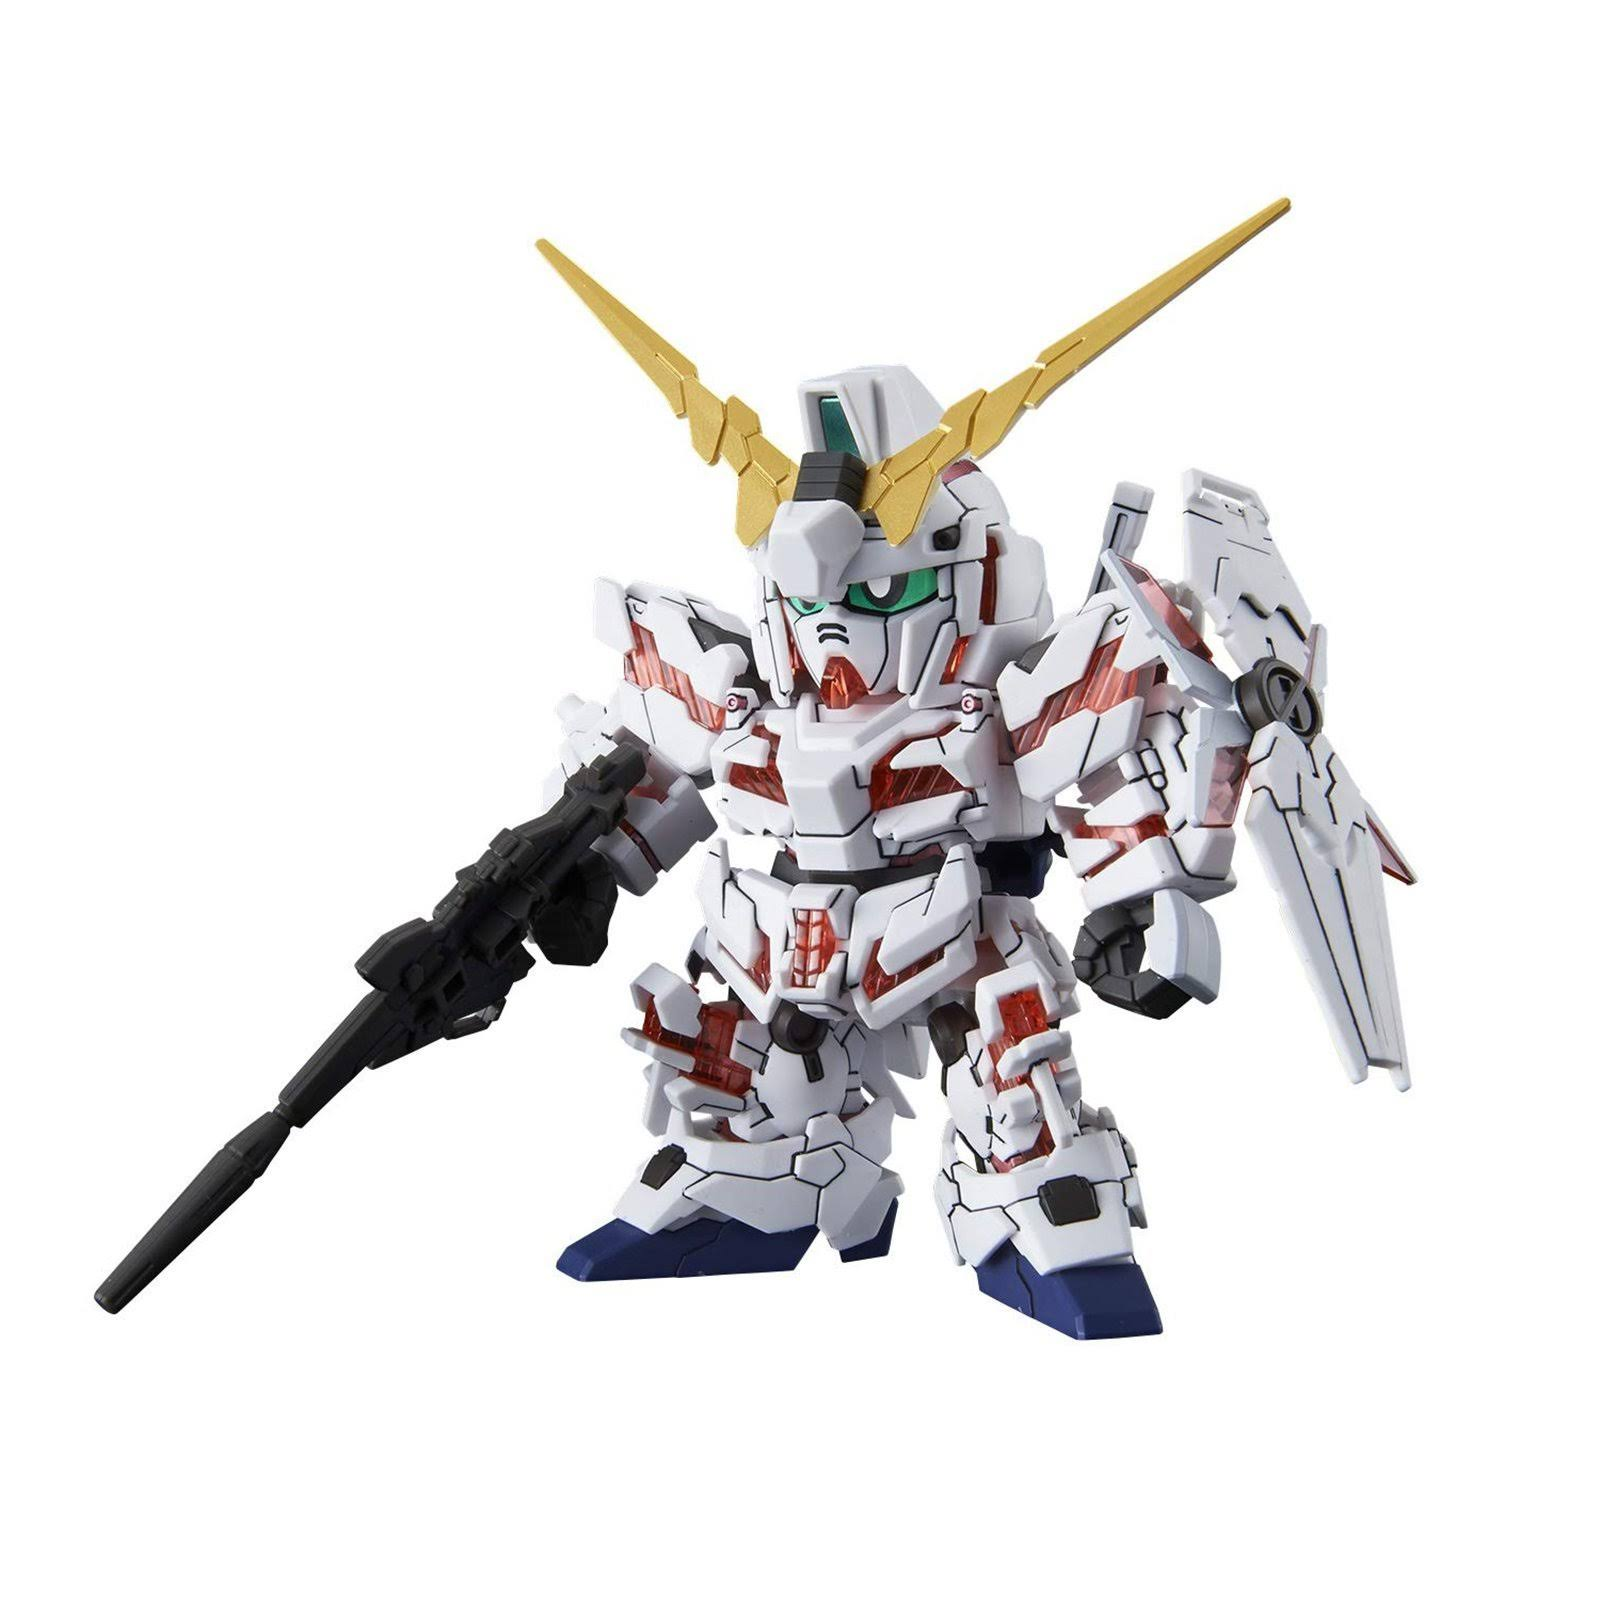 Bandai Gundam Unicorn 13 Unicorn Gundam Destroy Mode SDGCS Model Kit